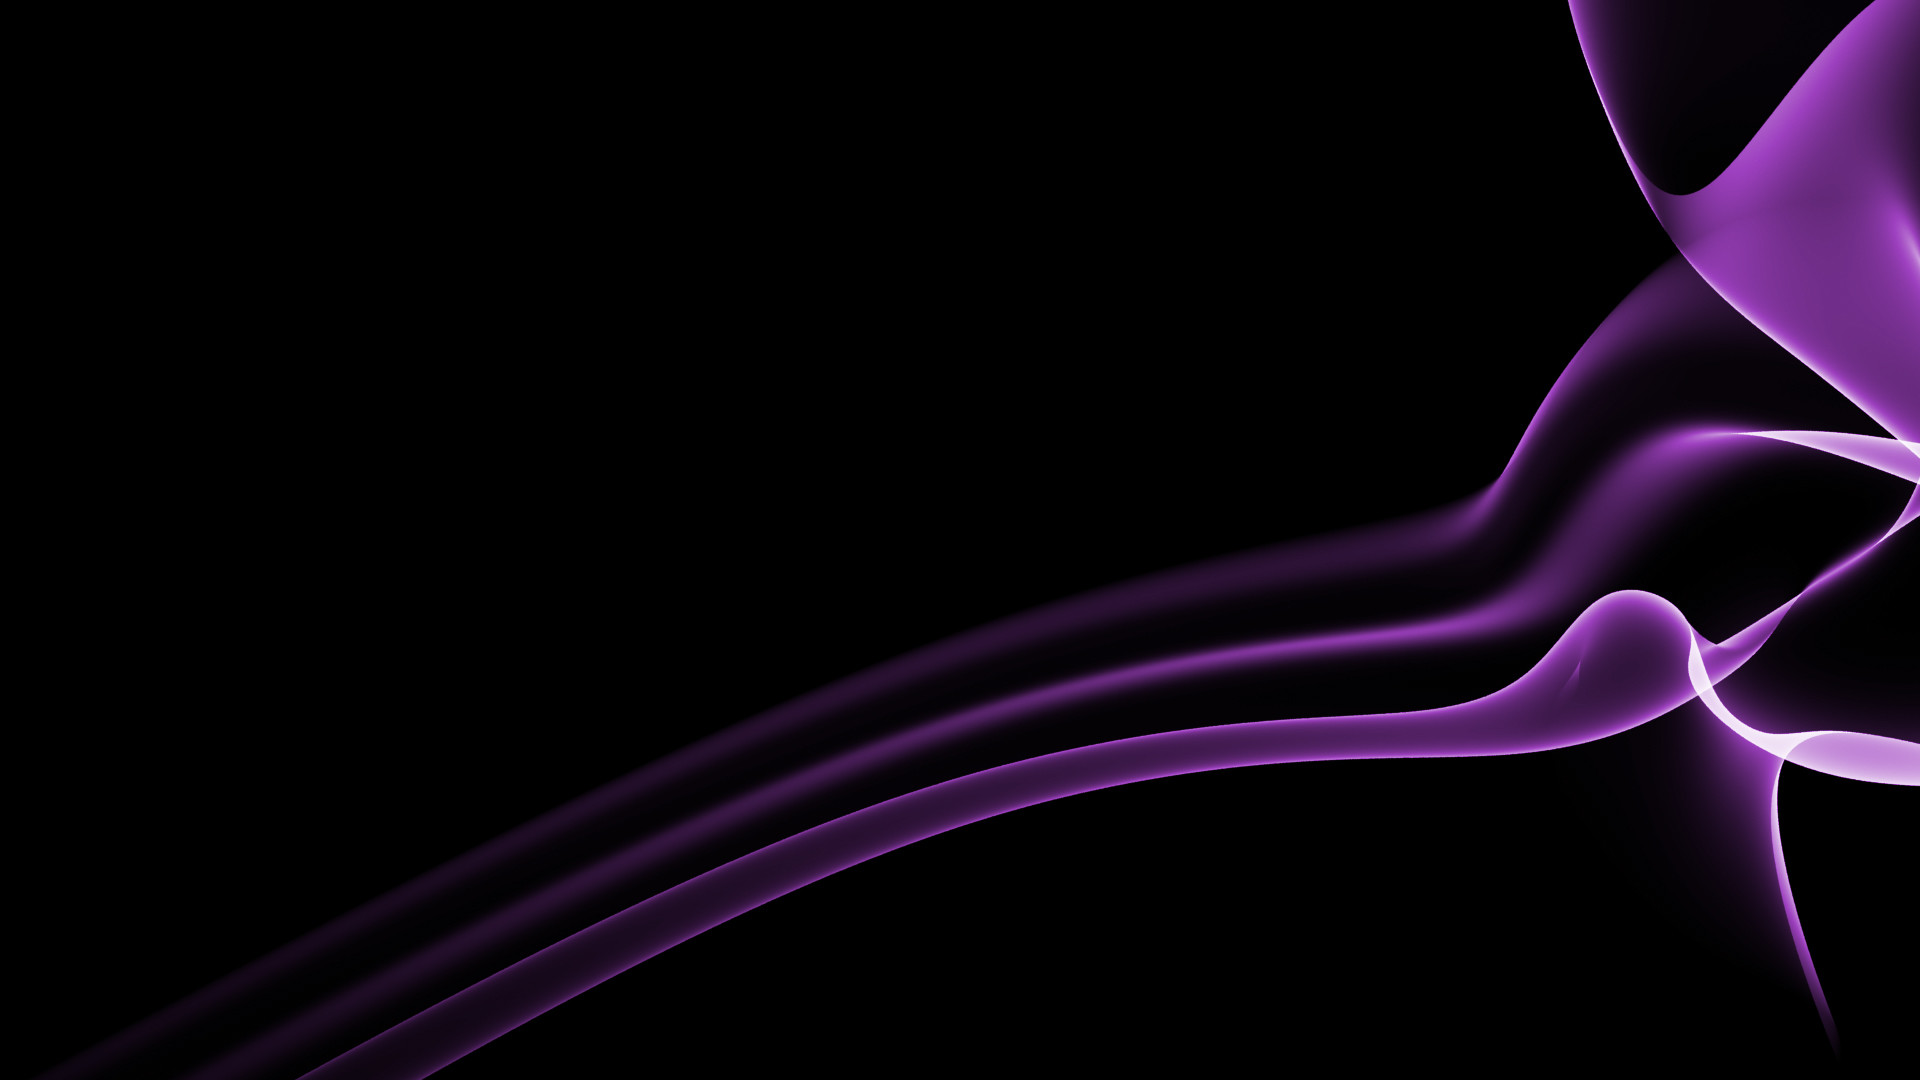 1920x1080 Purple Silver And Black Wallpaper 24 Hd Wallpaper. Purple Silver And Black  Wallpaper 24 Hd Wallpaper